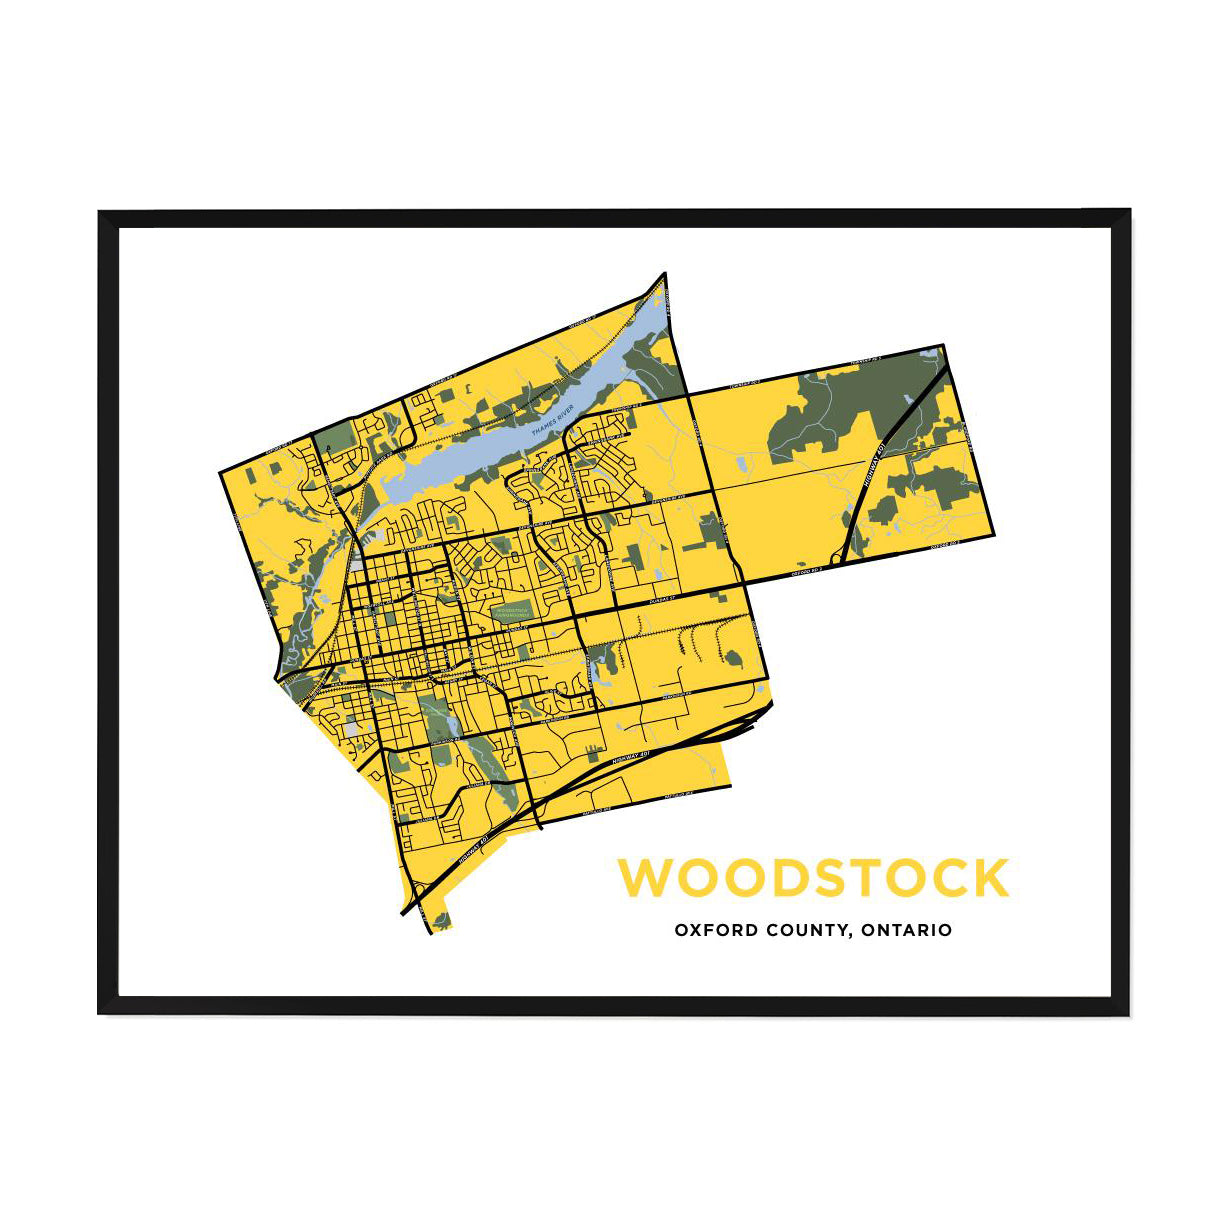 <i>*PICKUP ONLY*</i><br>Woodstock Map Print